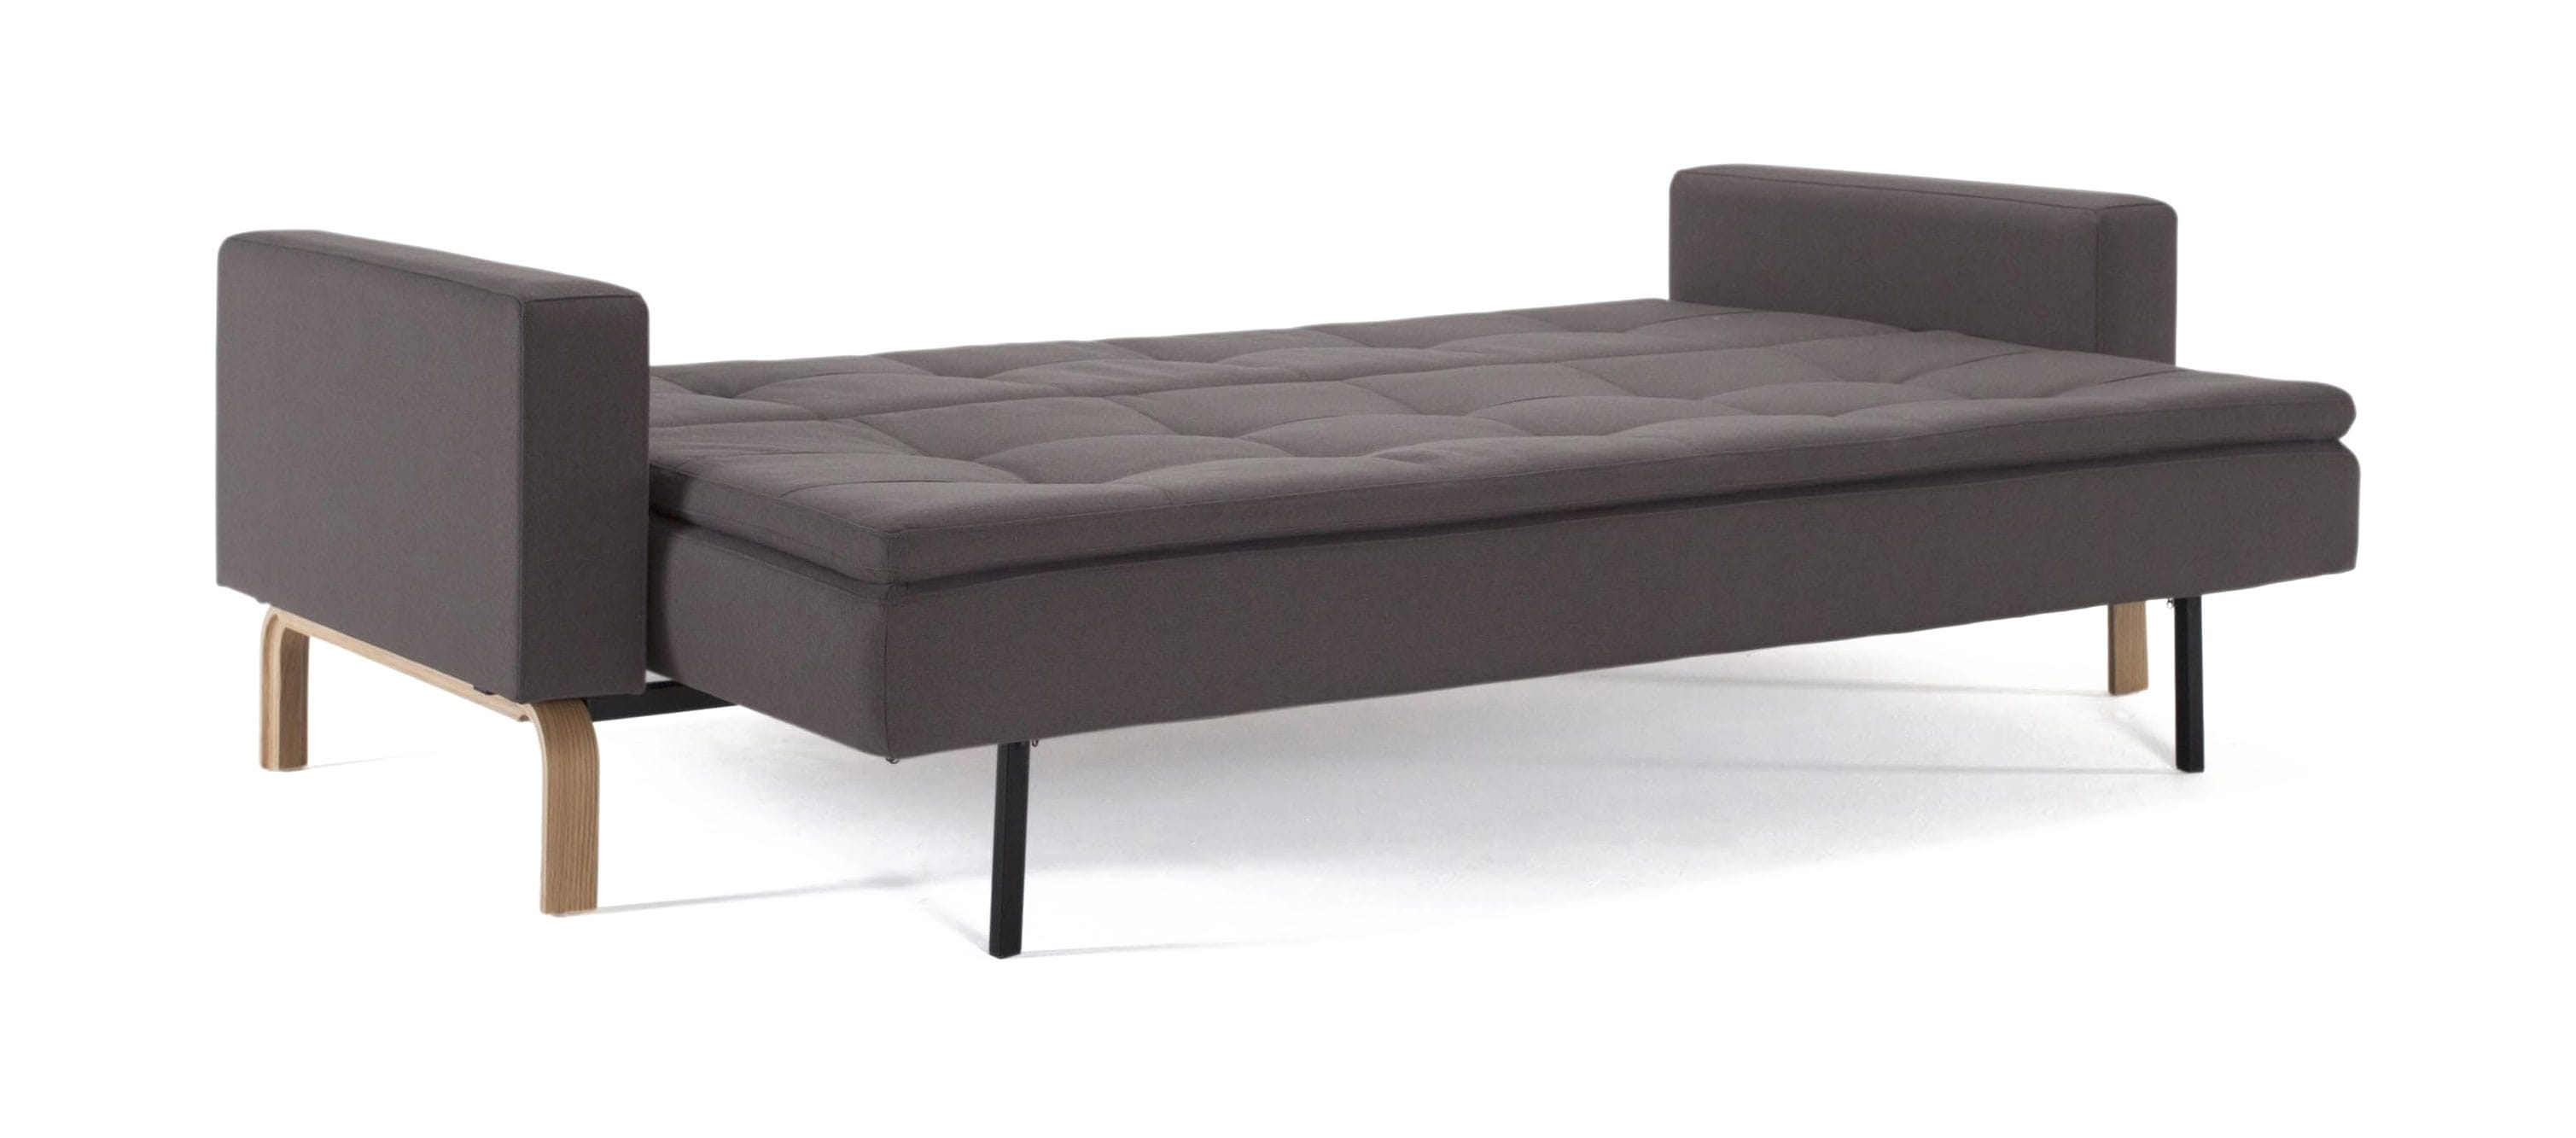 Cassius Dual Sofa Bed wArms Full Size Soft Gray by  : Dual Sofa Arms 555T 003 from www.functionalfurniturenyc.com size 3543 x 2480 jpeg 124kB